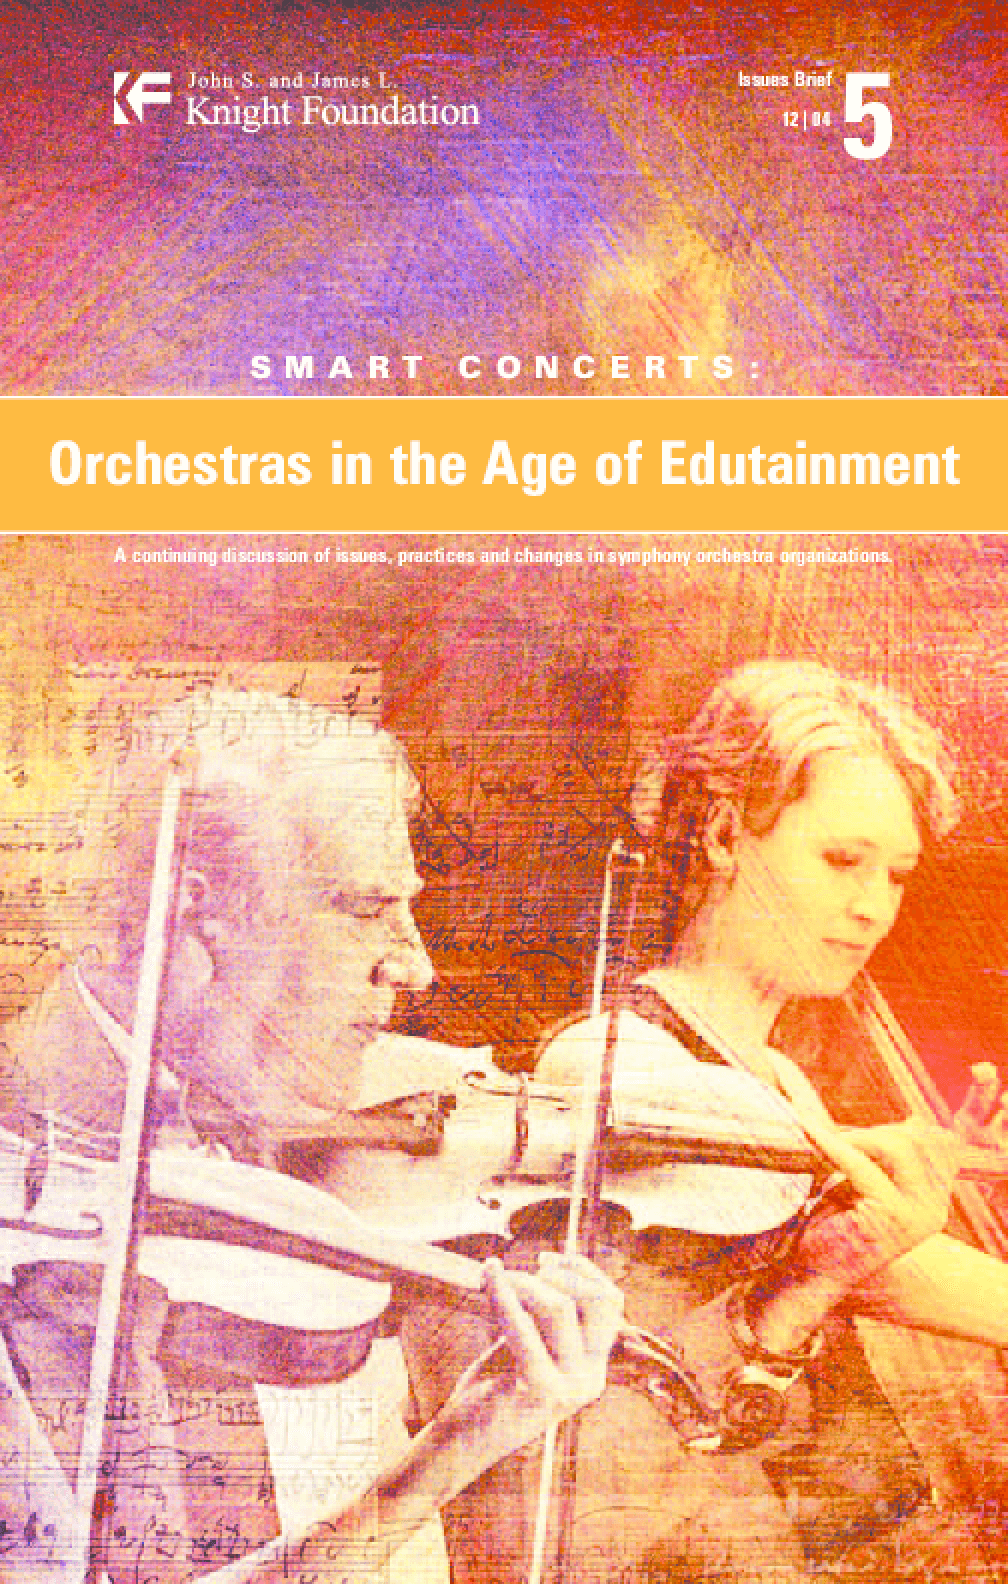 Smart Concerts: Orchestras in the Age of Edutainment